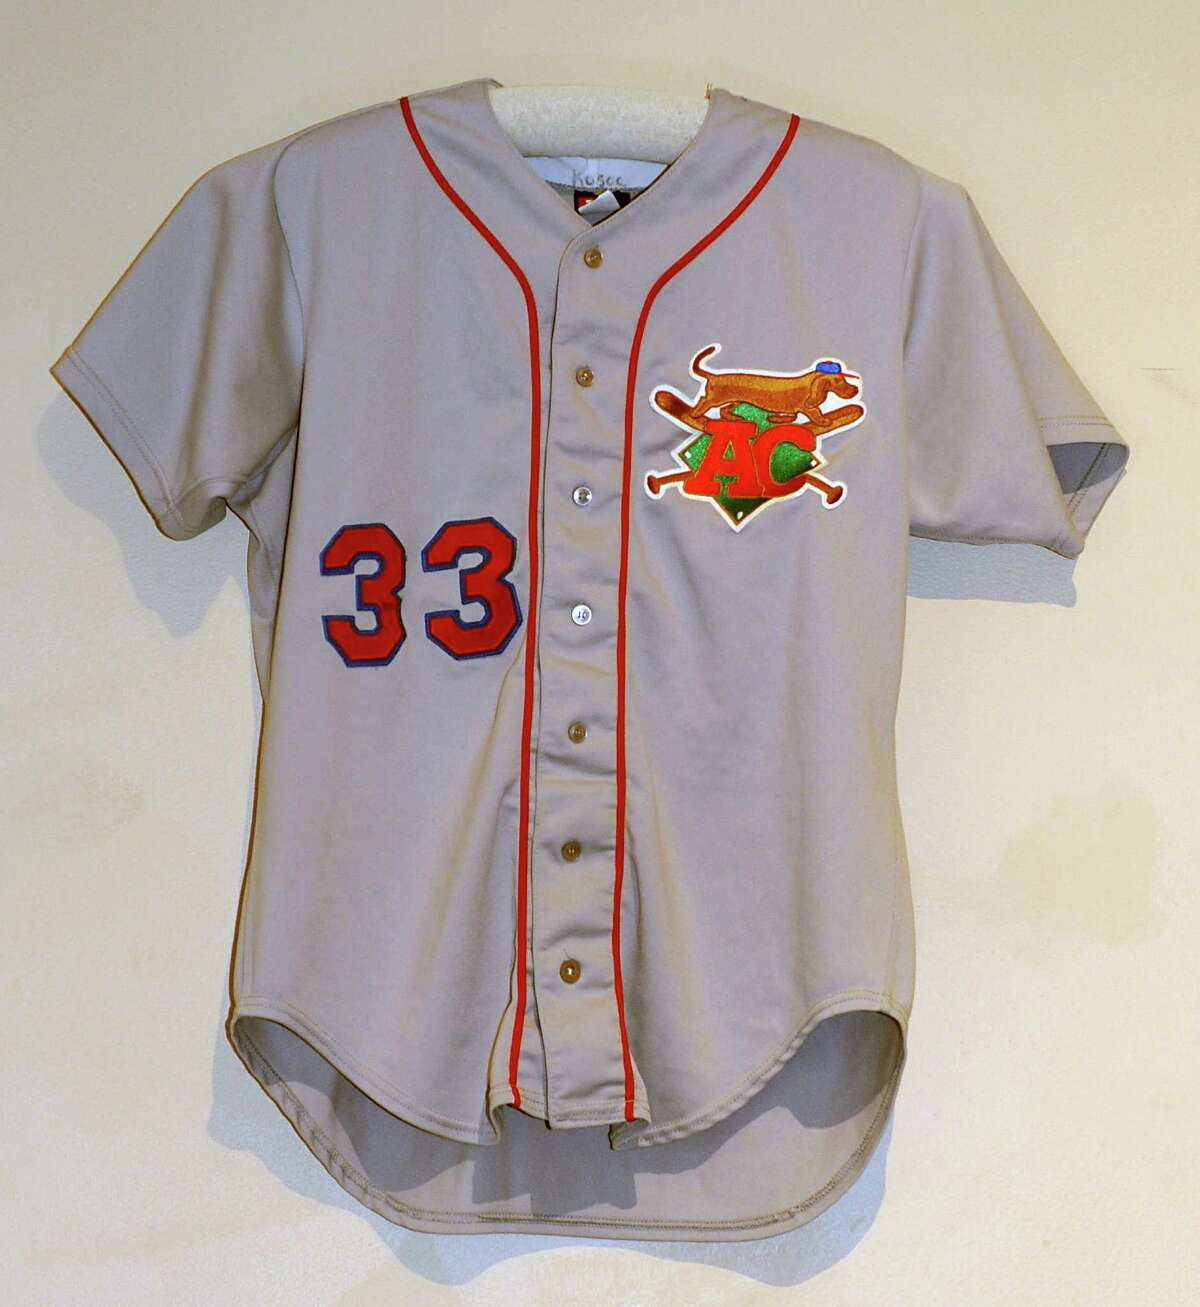 A baseball jersey from the Albany Colonie Diamond Dogs is on display at The Albany Institute of History & Art on Wednesday, Feb. 4, 2015 in Albany, N.Y. The newest exhibition at the museum, Triple Play: Baseball at the Albany Institute, is set to open February 7. (Lori Van Buren / Times Union)